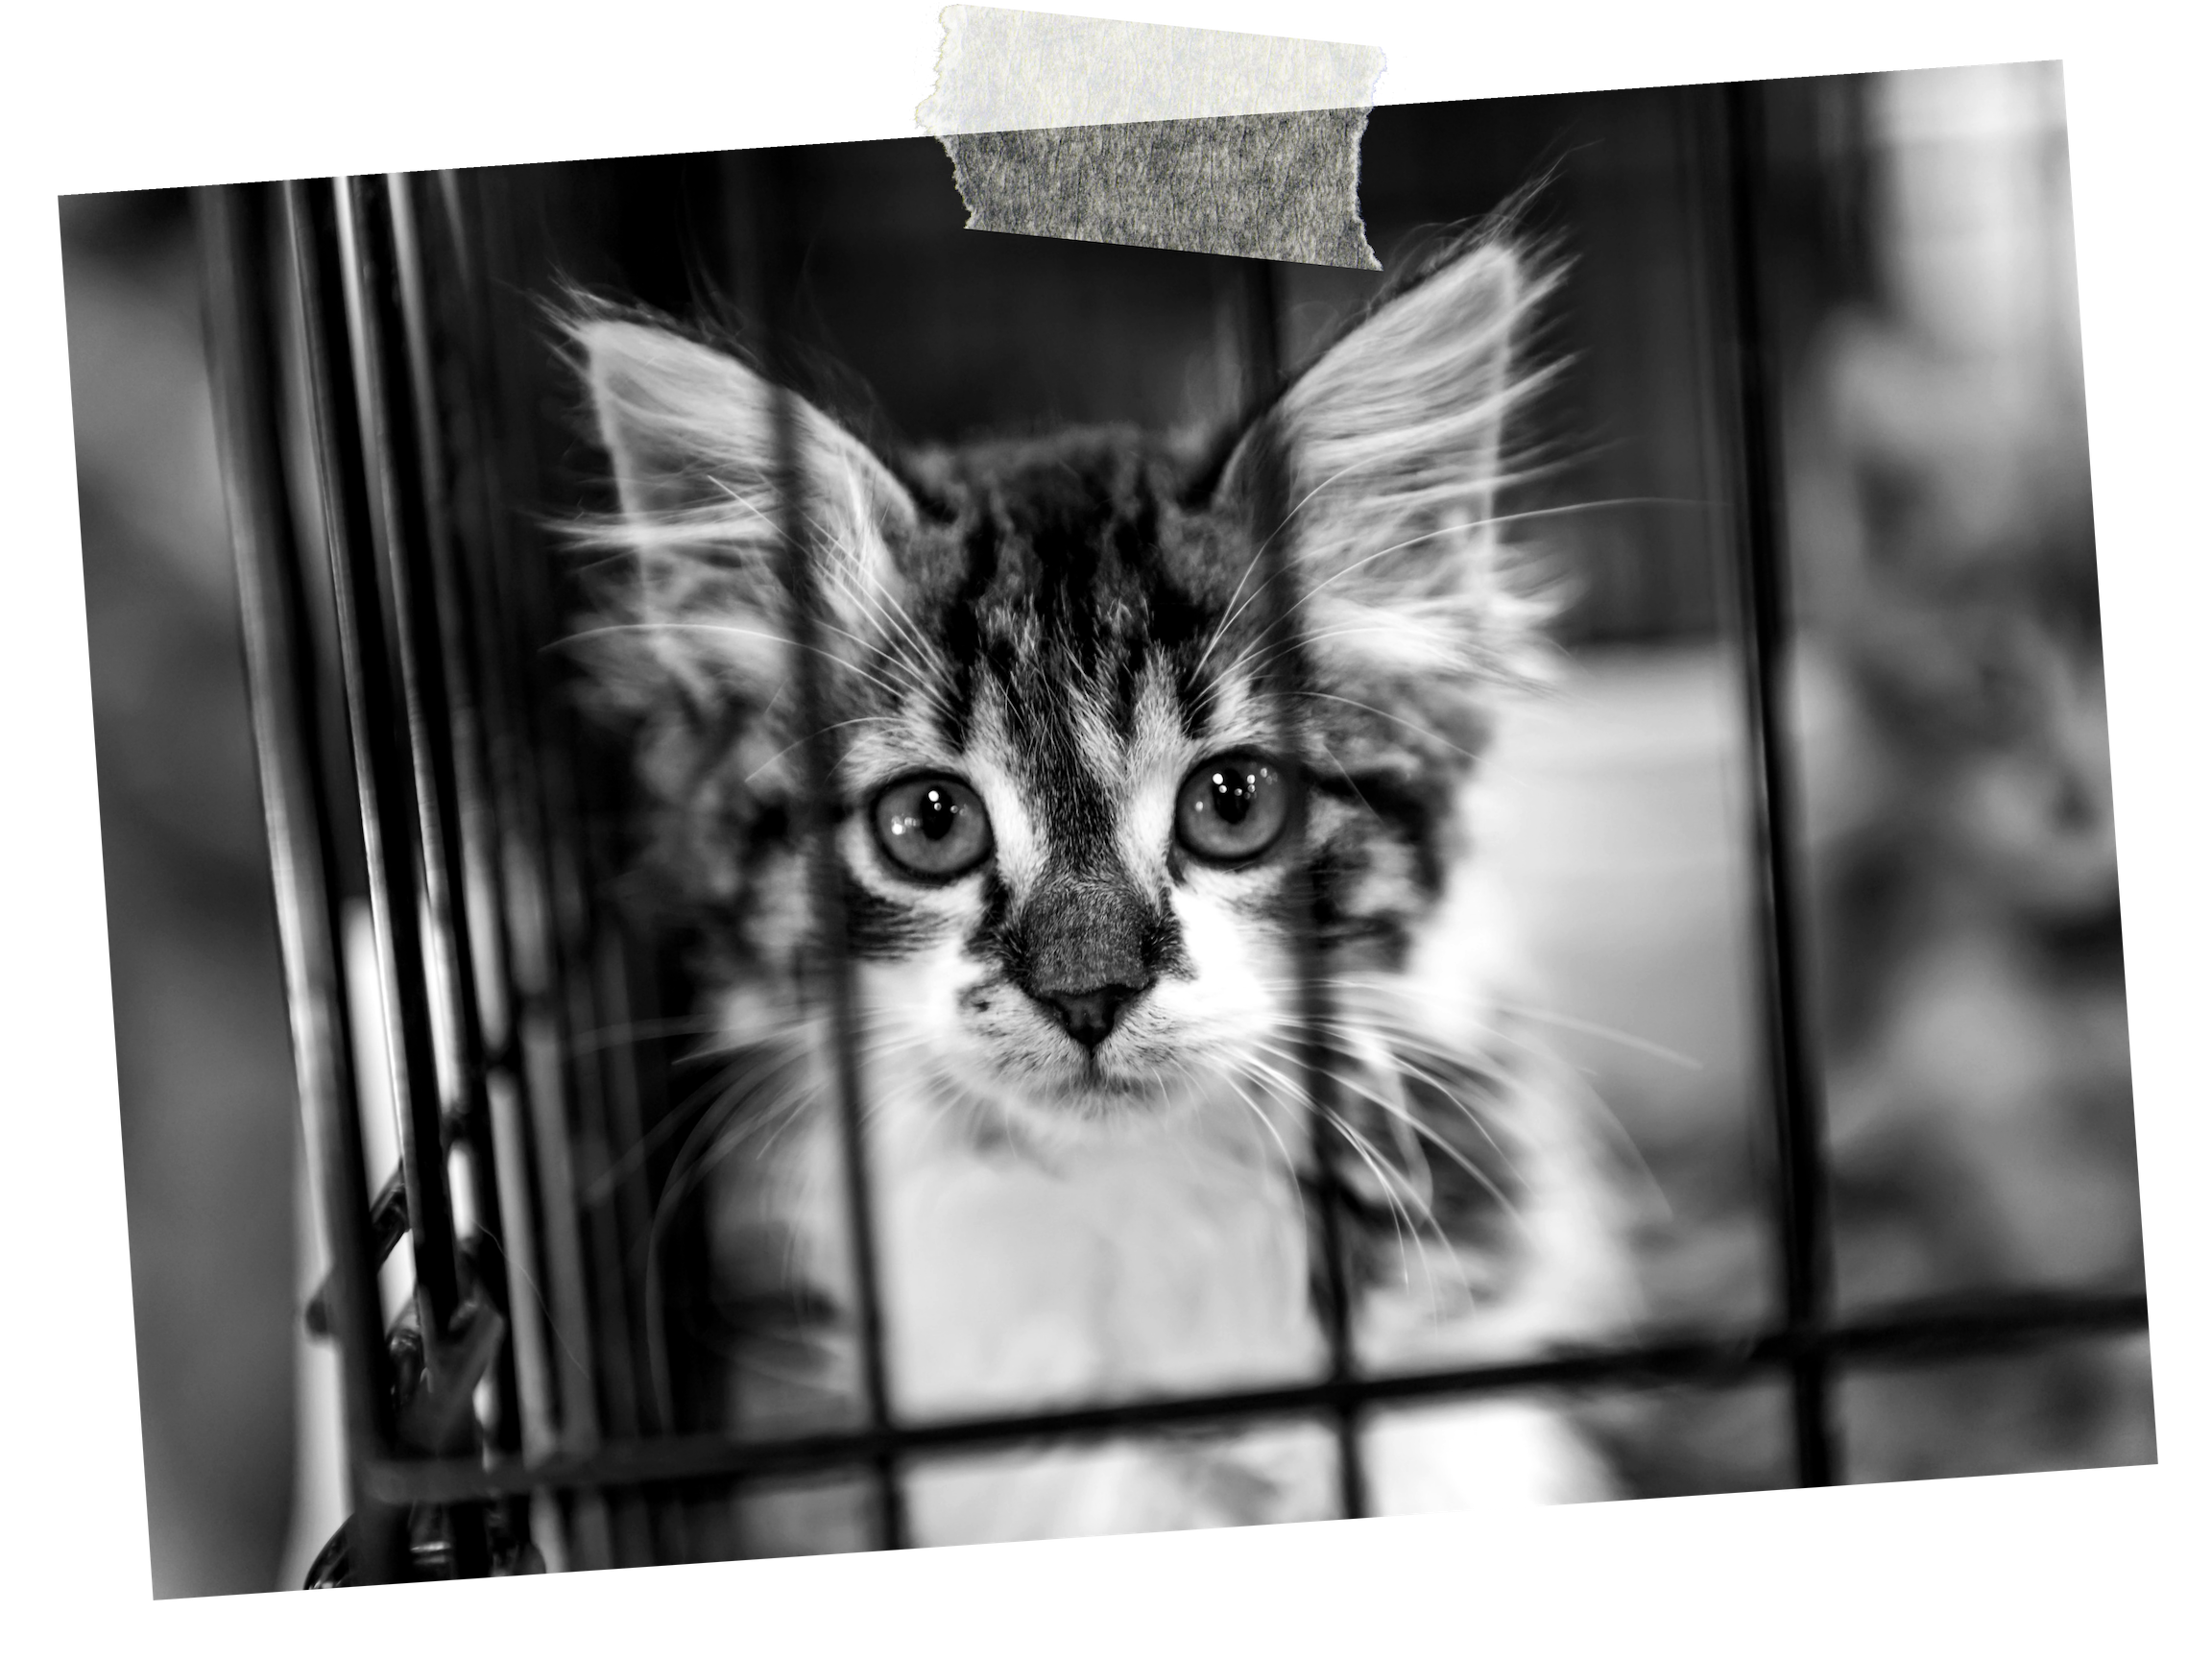 2. LEGAL or ILLEGAL?Researchers sever part a cat's spinal cord and forced it to walk on a treadmill. -